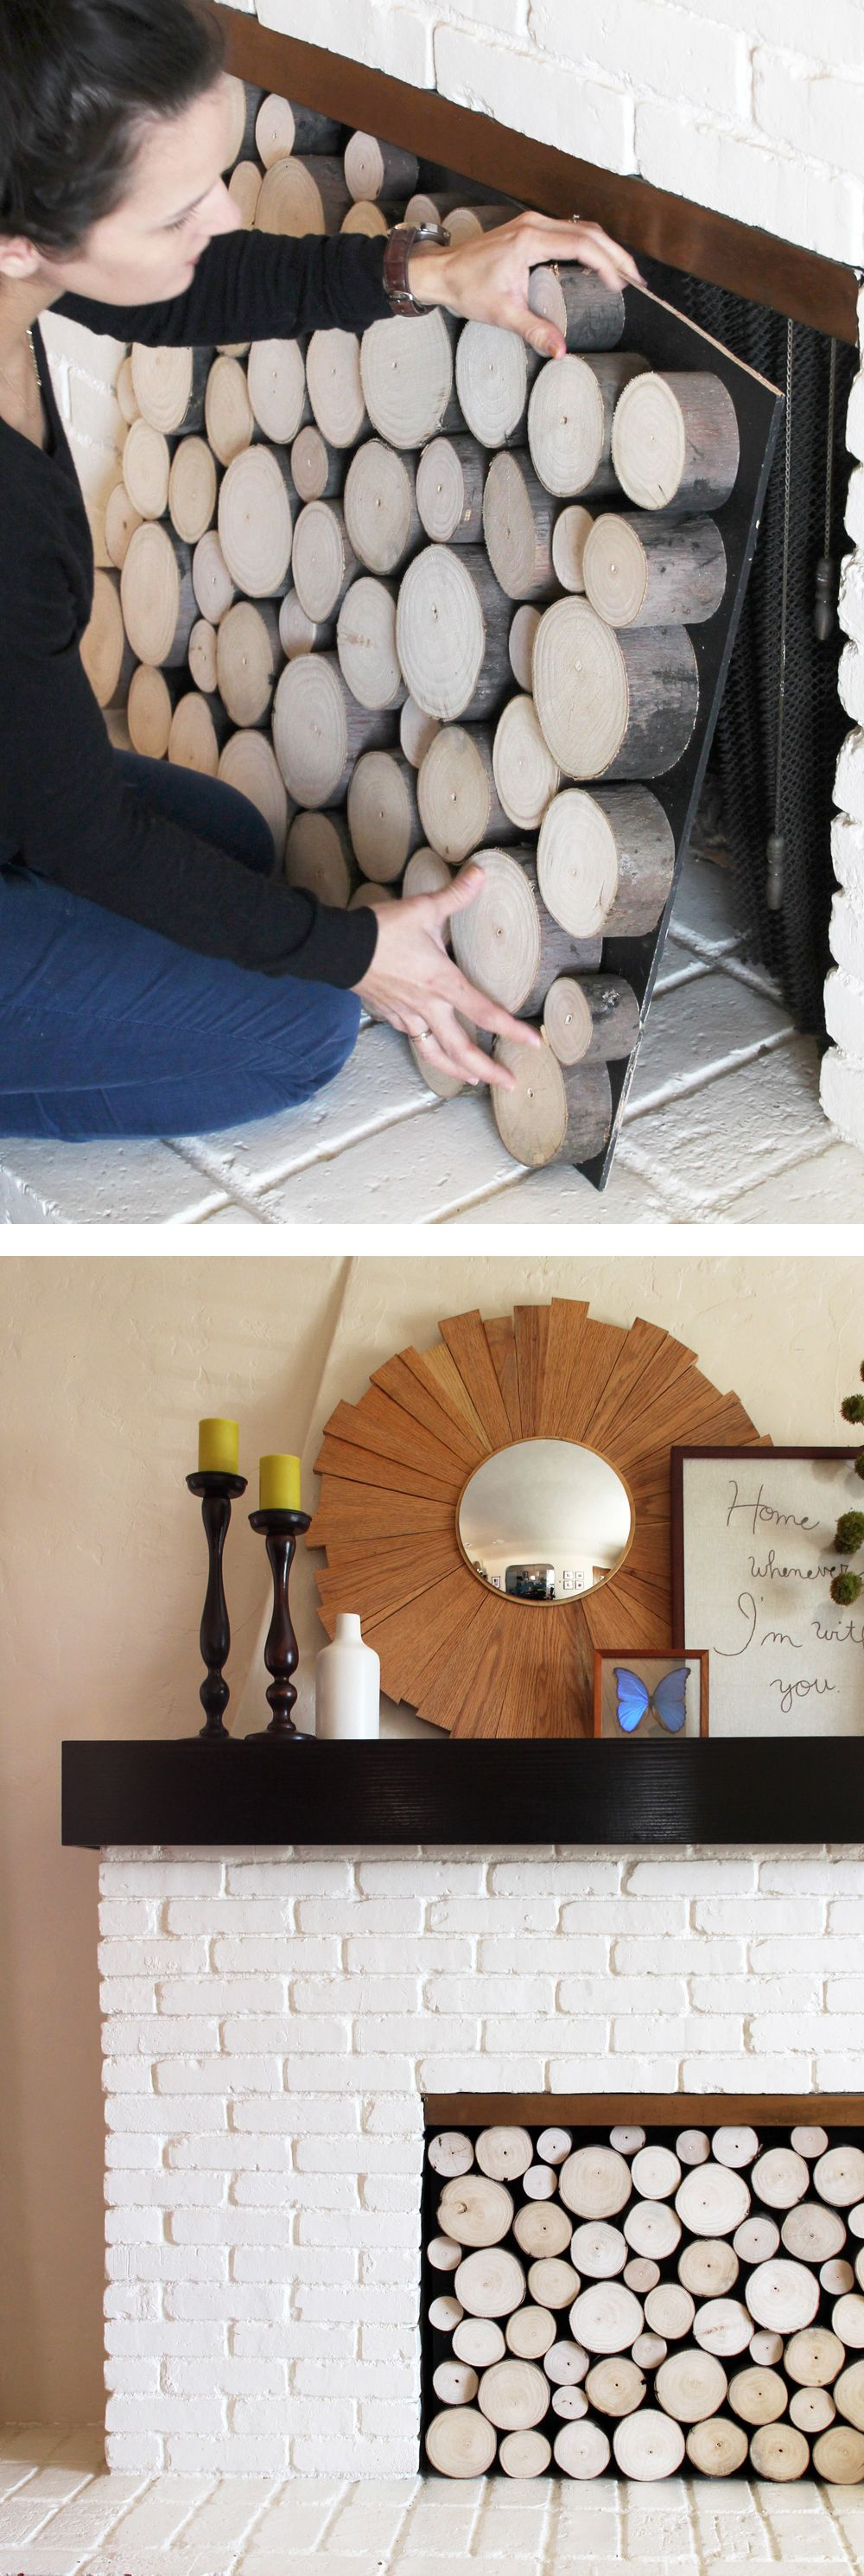 DIY Projects: Insulated Fireplace Cover Tutorial | Home Projects ...